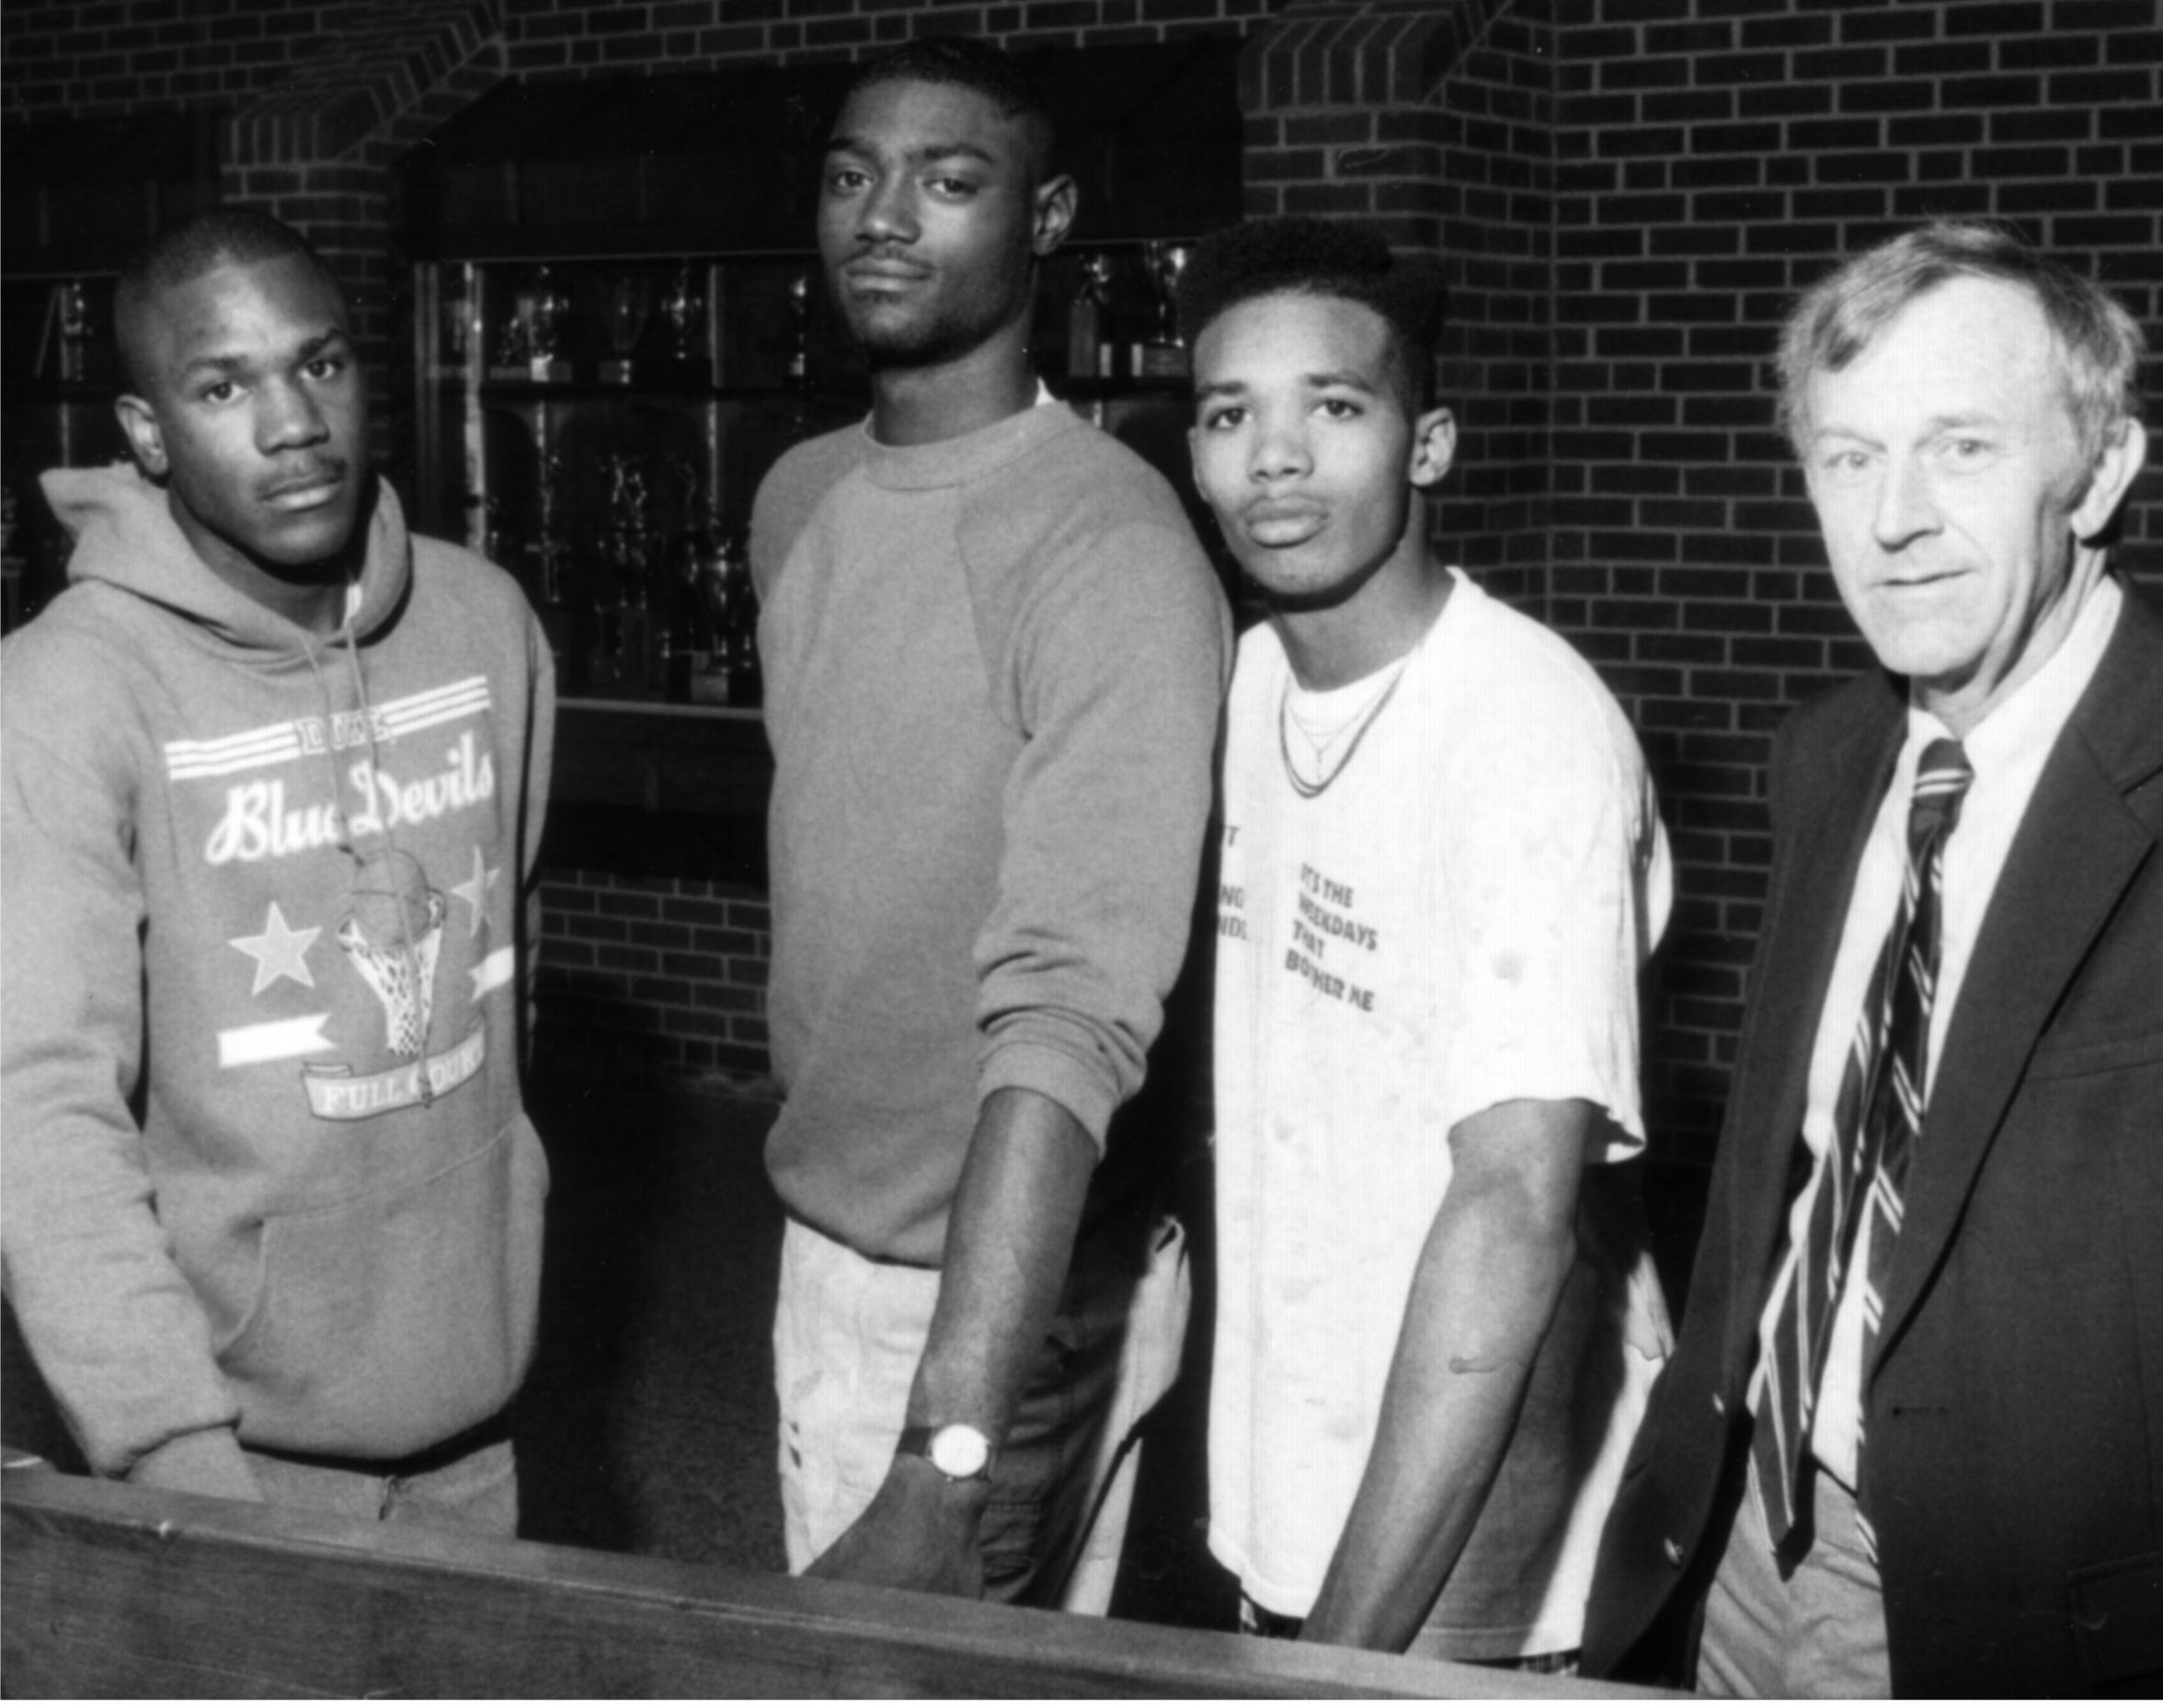 Keith Scott, third from left, was The News Leader's 1990 offensive player of the year after helping lead his team to a state championship. With Scott are, from left, Jo Jo Stuart, Reggie Waddy and Coach Paul Hatcher.